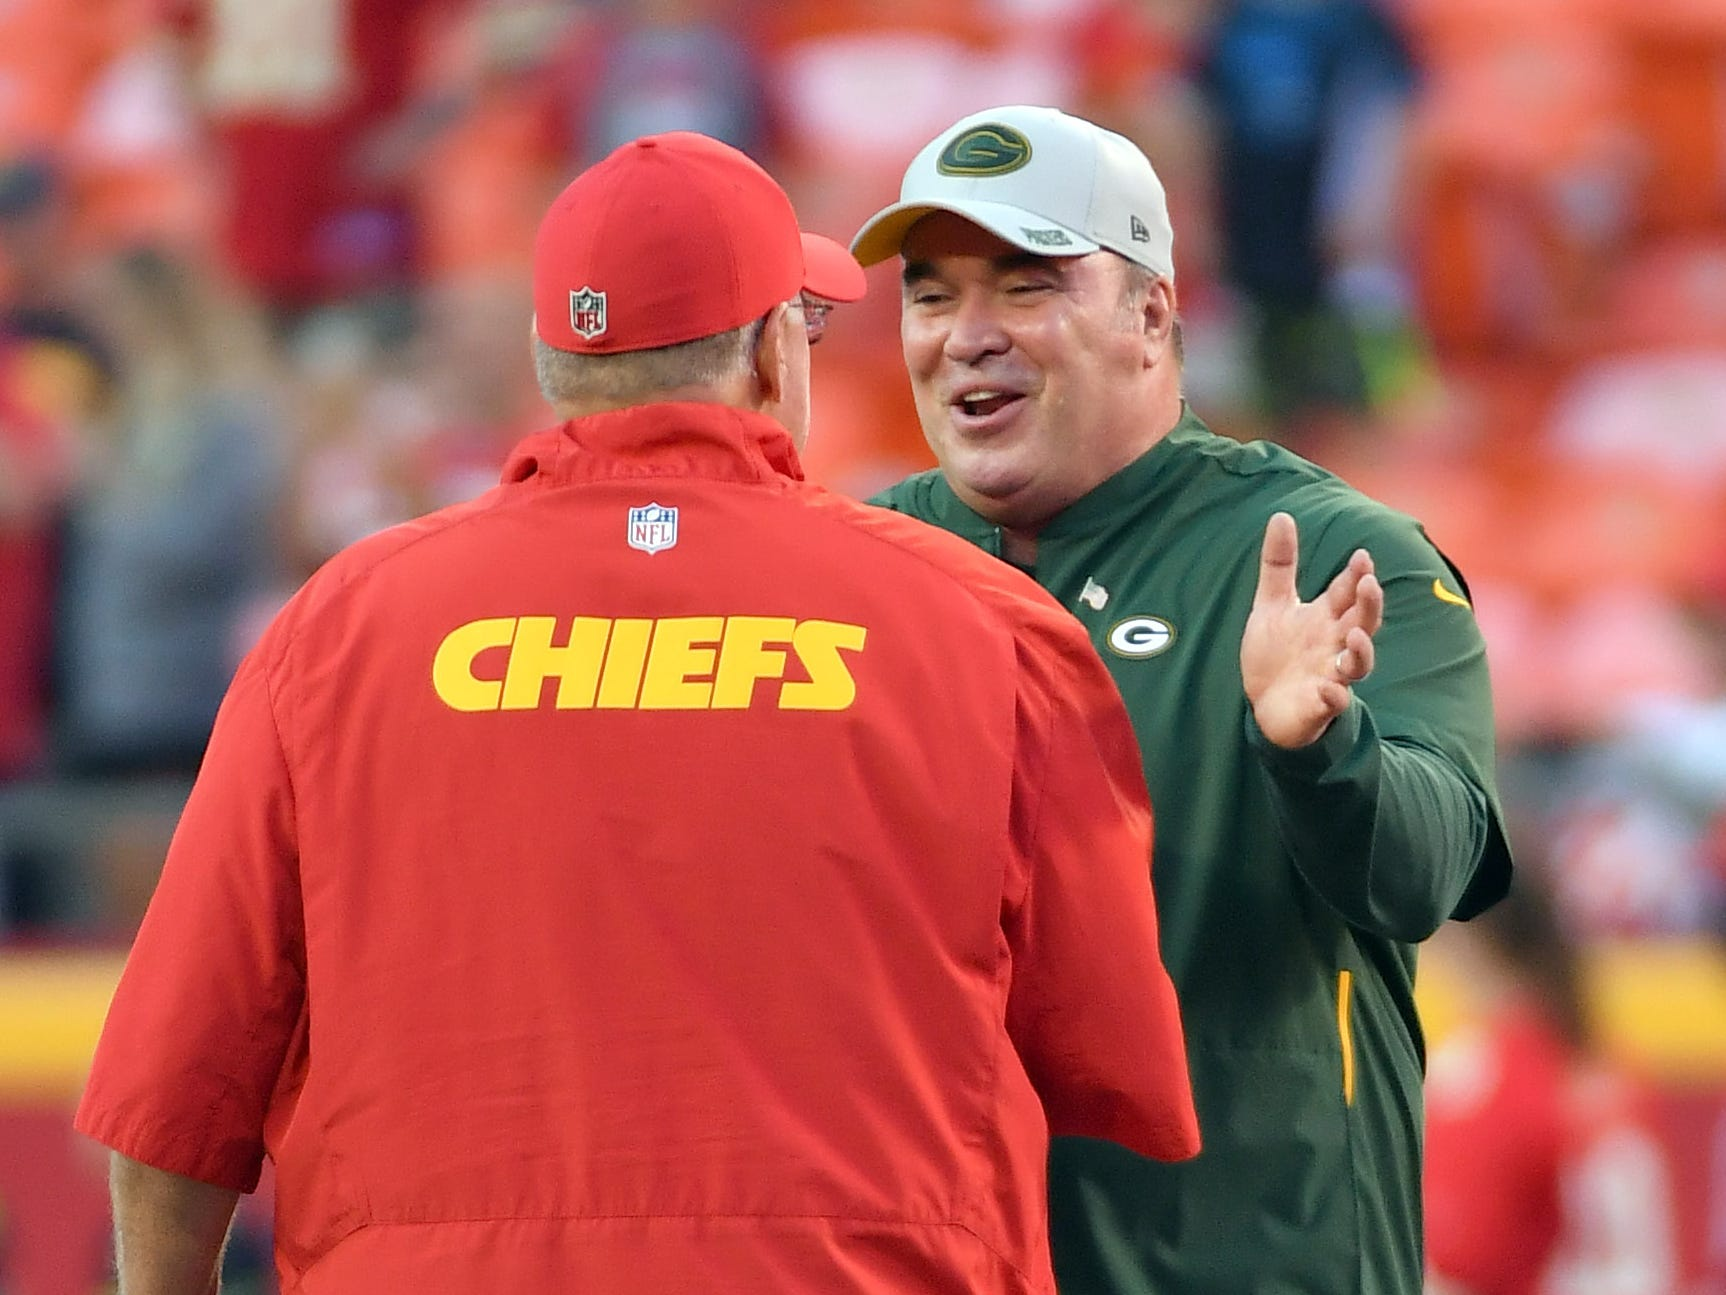 Aug 30, 2018; Kansas City, MO, USA; Green Bay Packers head coach Mike McCarthy talks with Kansas City Chiefs head coach Andy Reid before the game at Arrowhead Stadium.